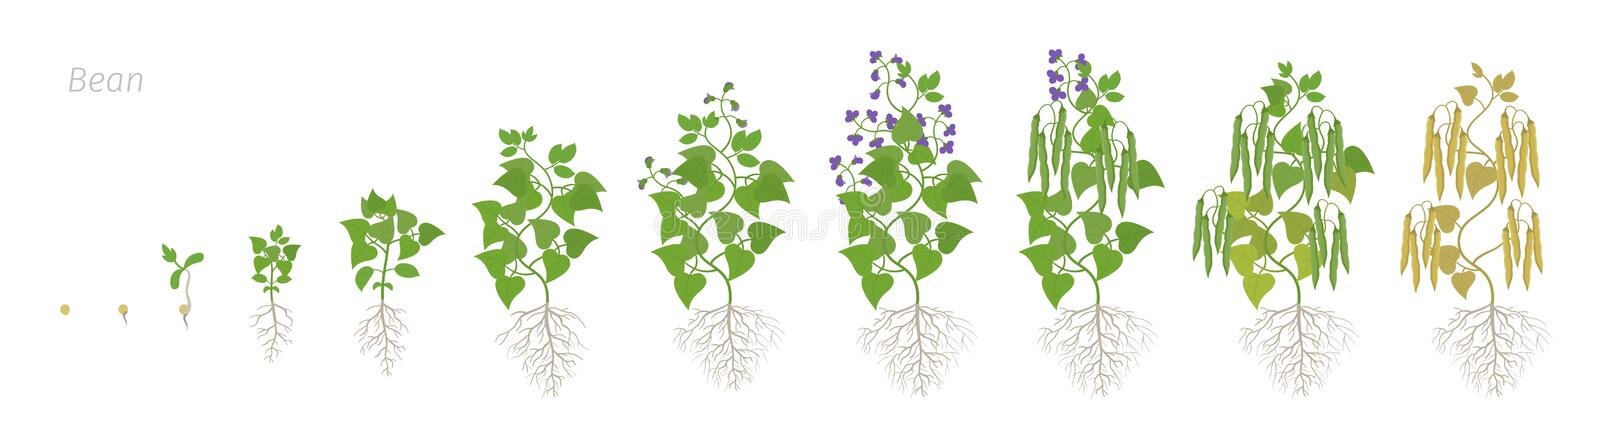 Growth stages of bean plant with roots. Bean family Fabaceae phases set ripening period. Life cycle, animation. Growth stages of bean plant with roots. Bean stock illustration